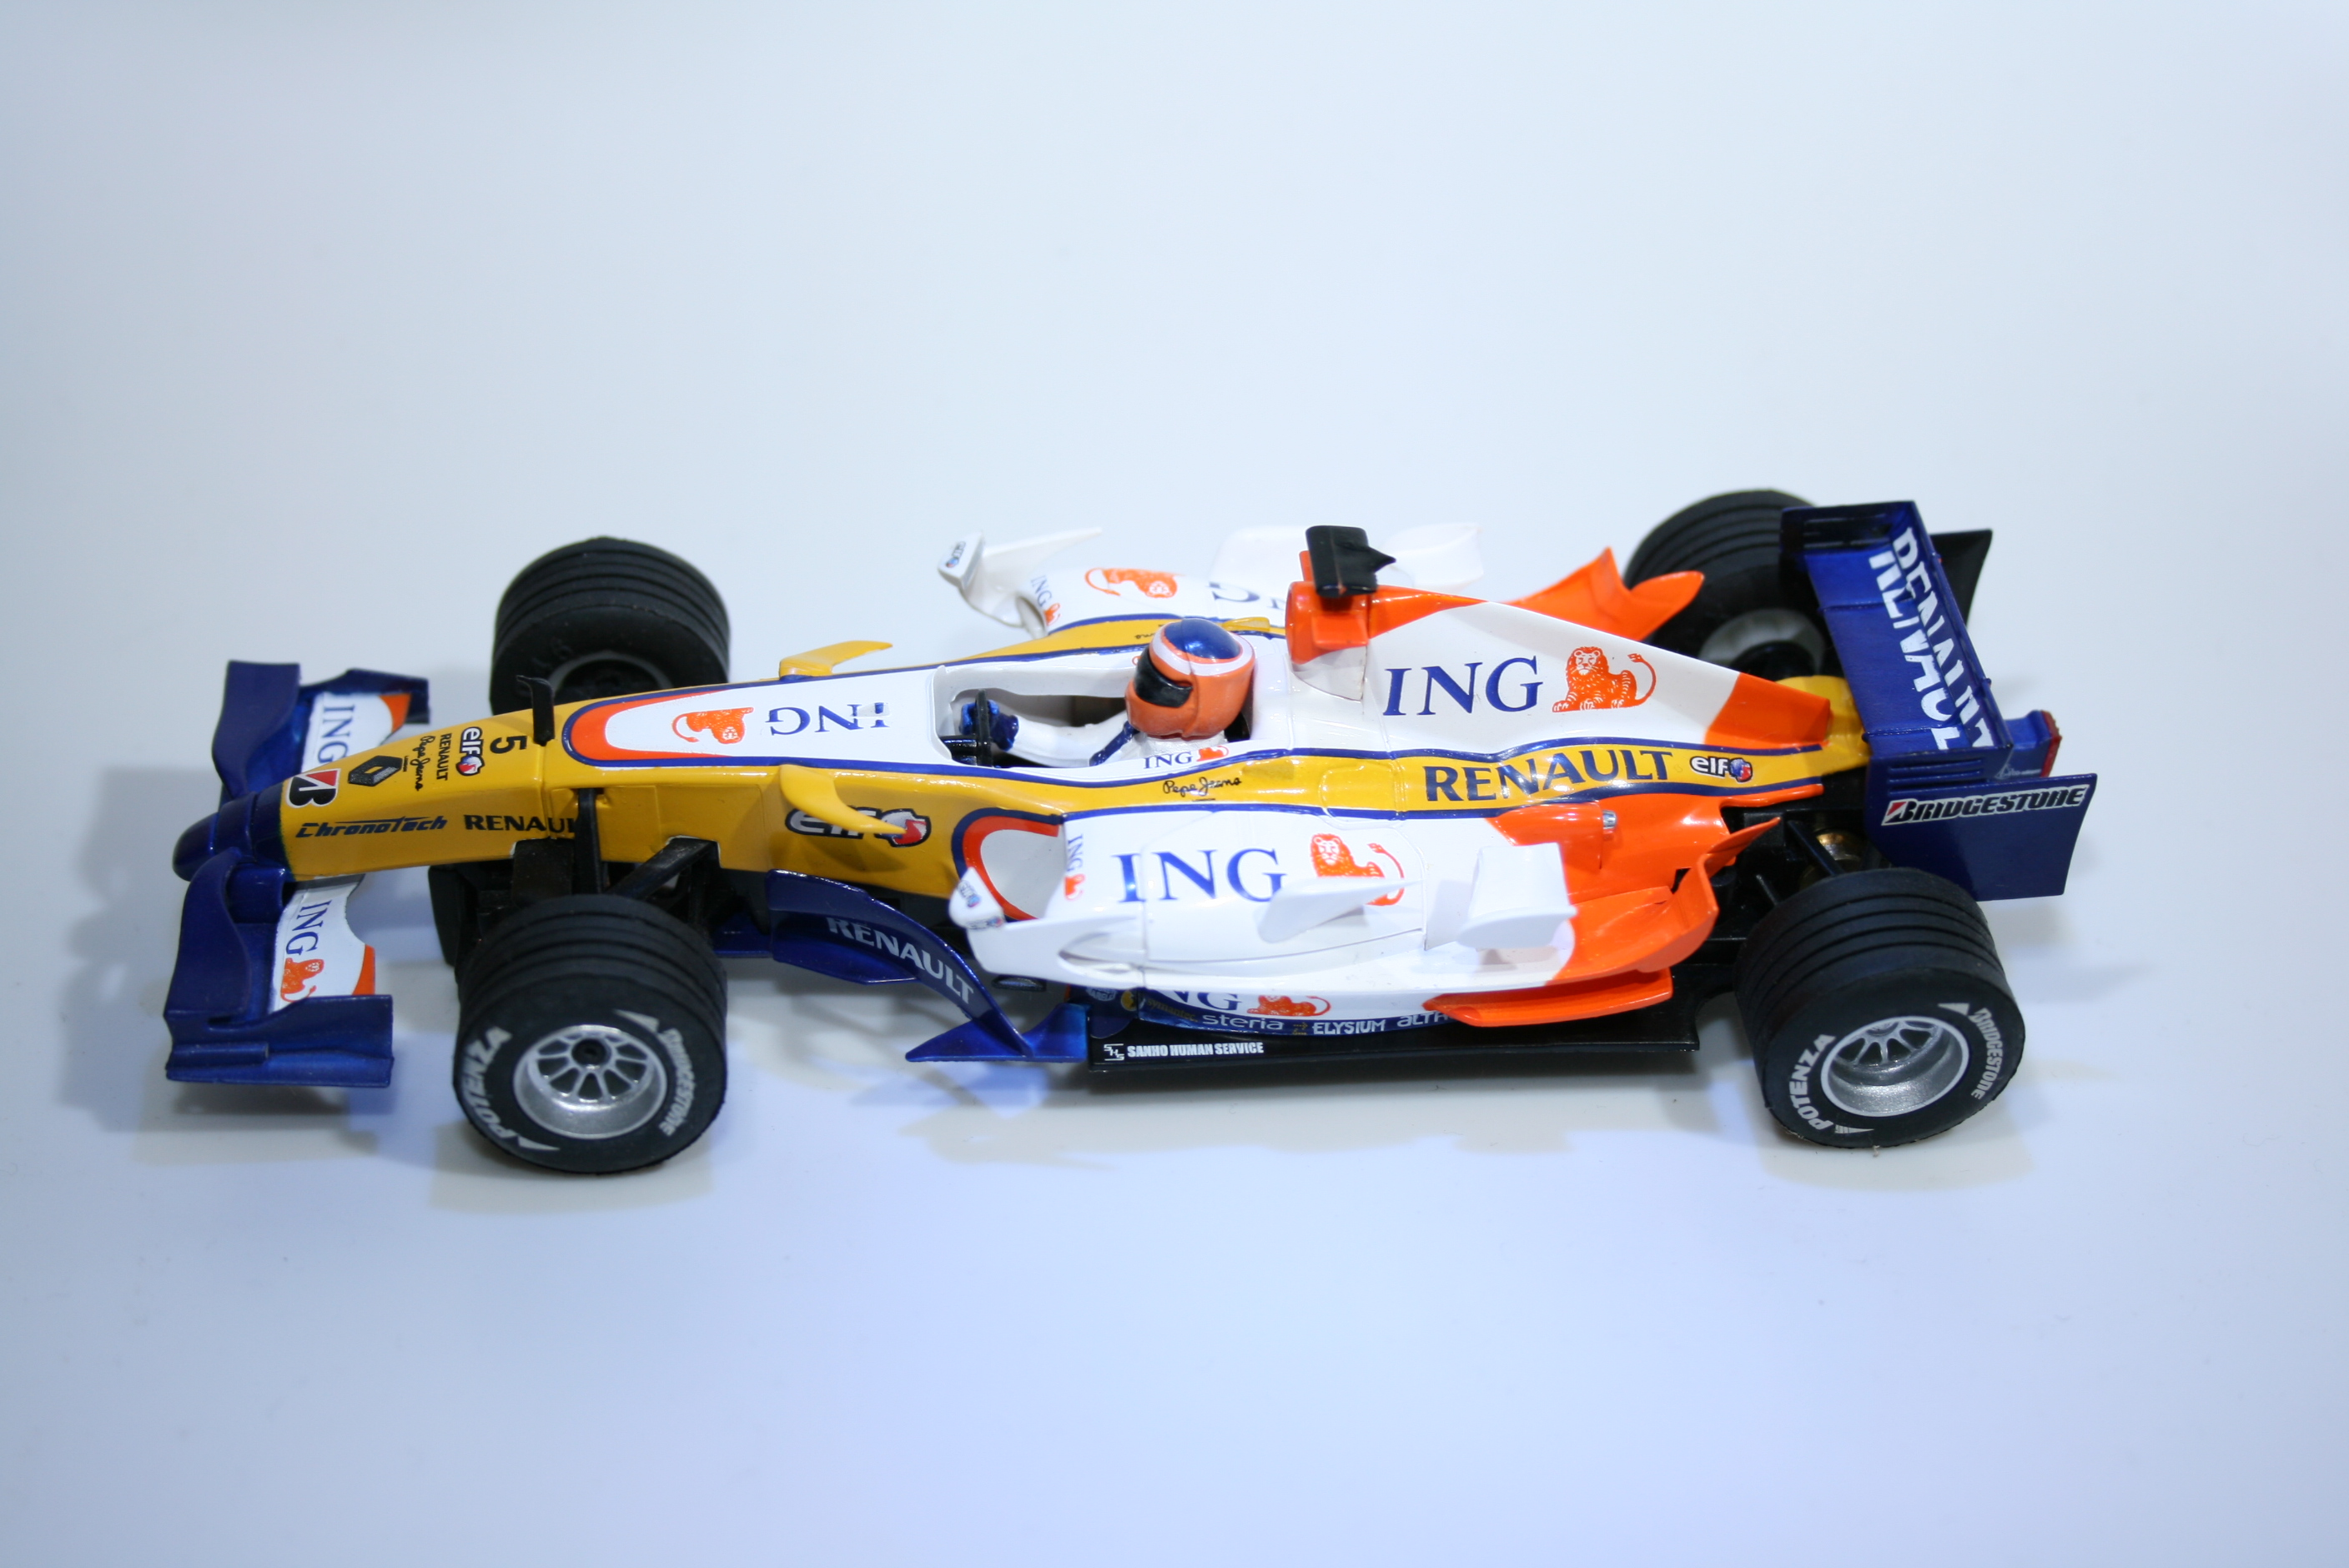 784 Renault R28 2008 F Alonso SCX Grandes Campeones 2008 Boxed